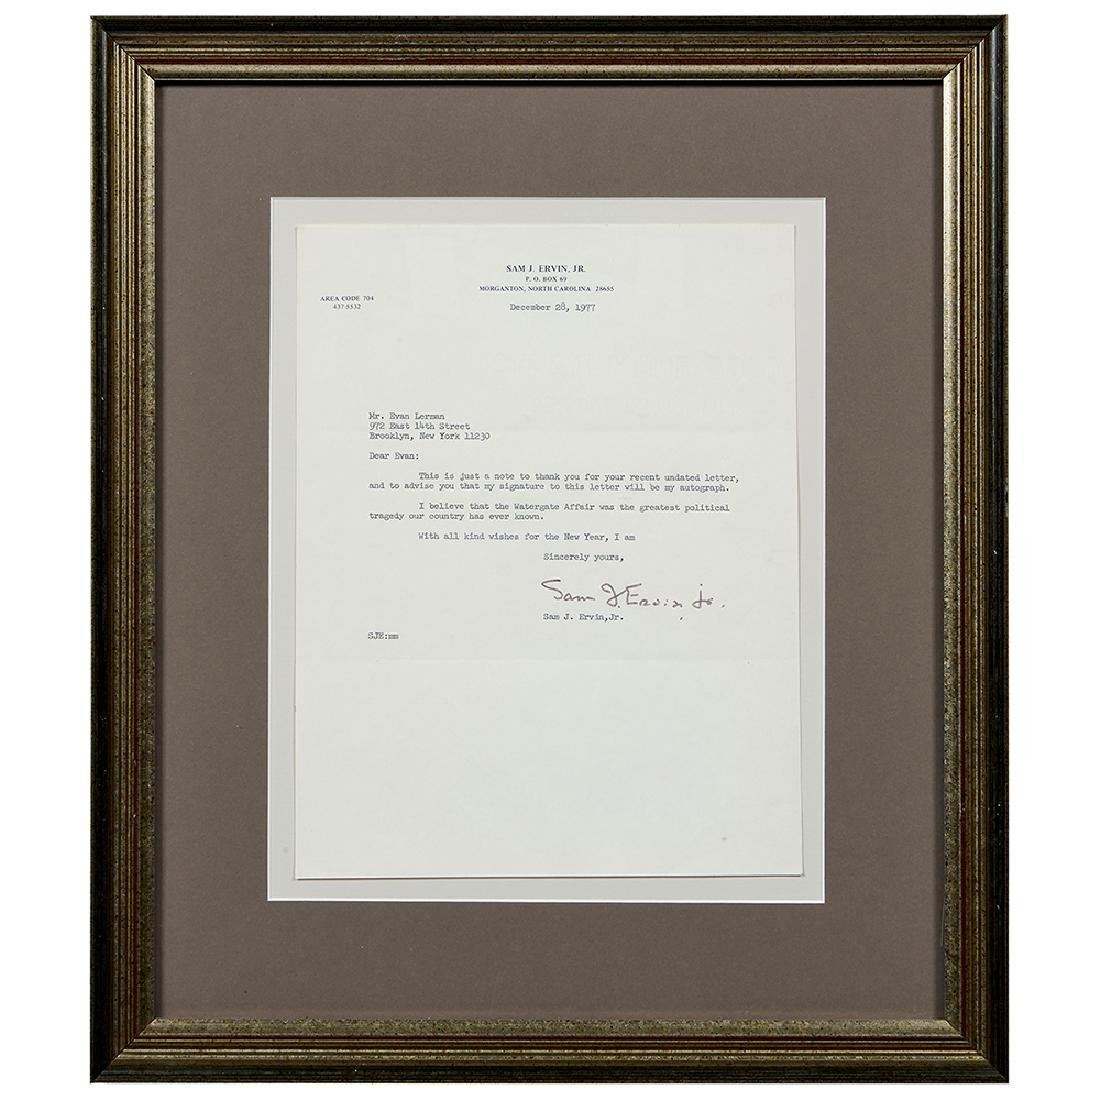 Watergate, (3) Signed Letters and (4) Photographs - 6